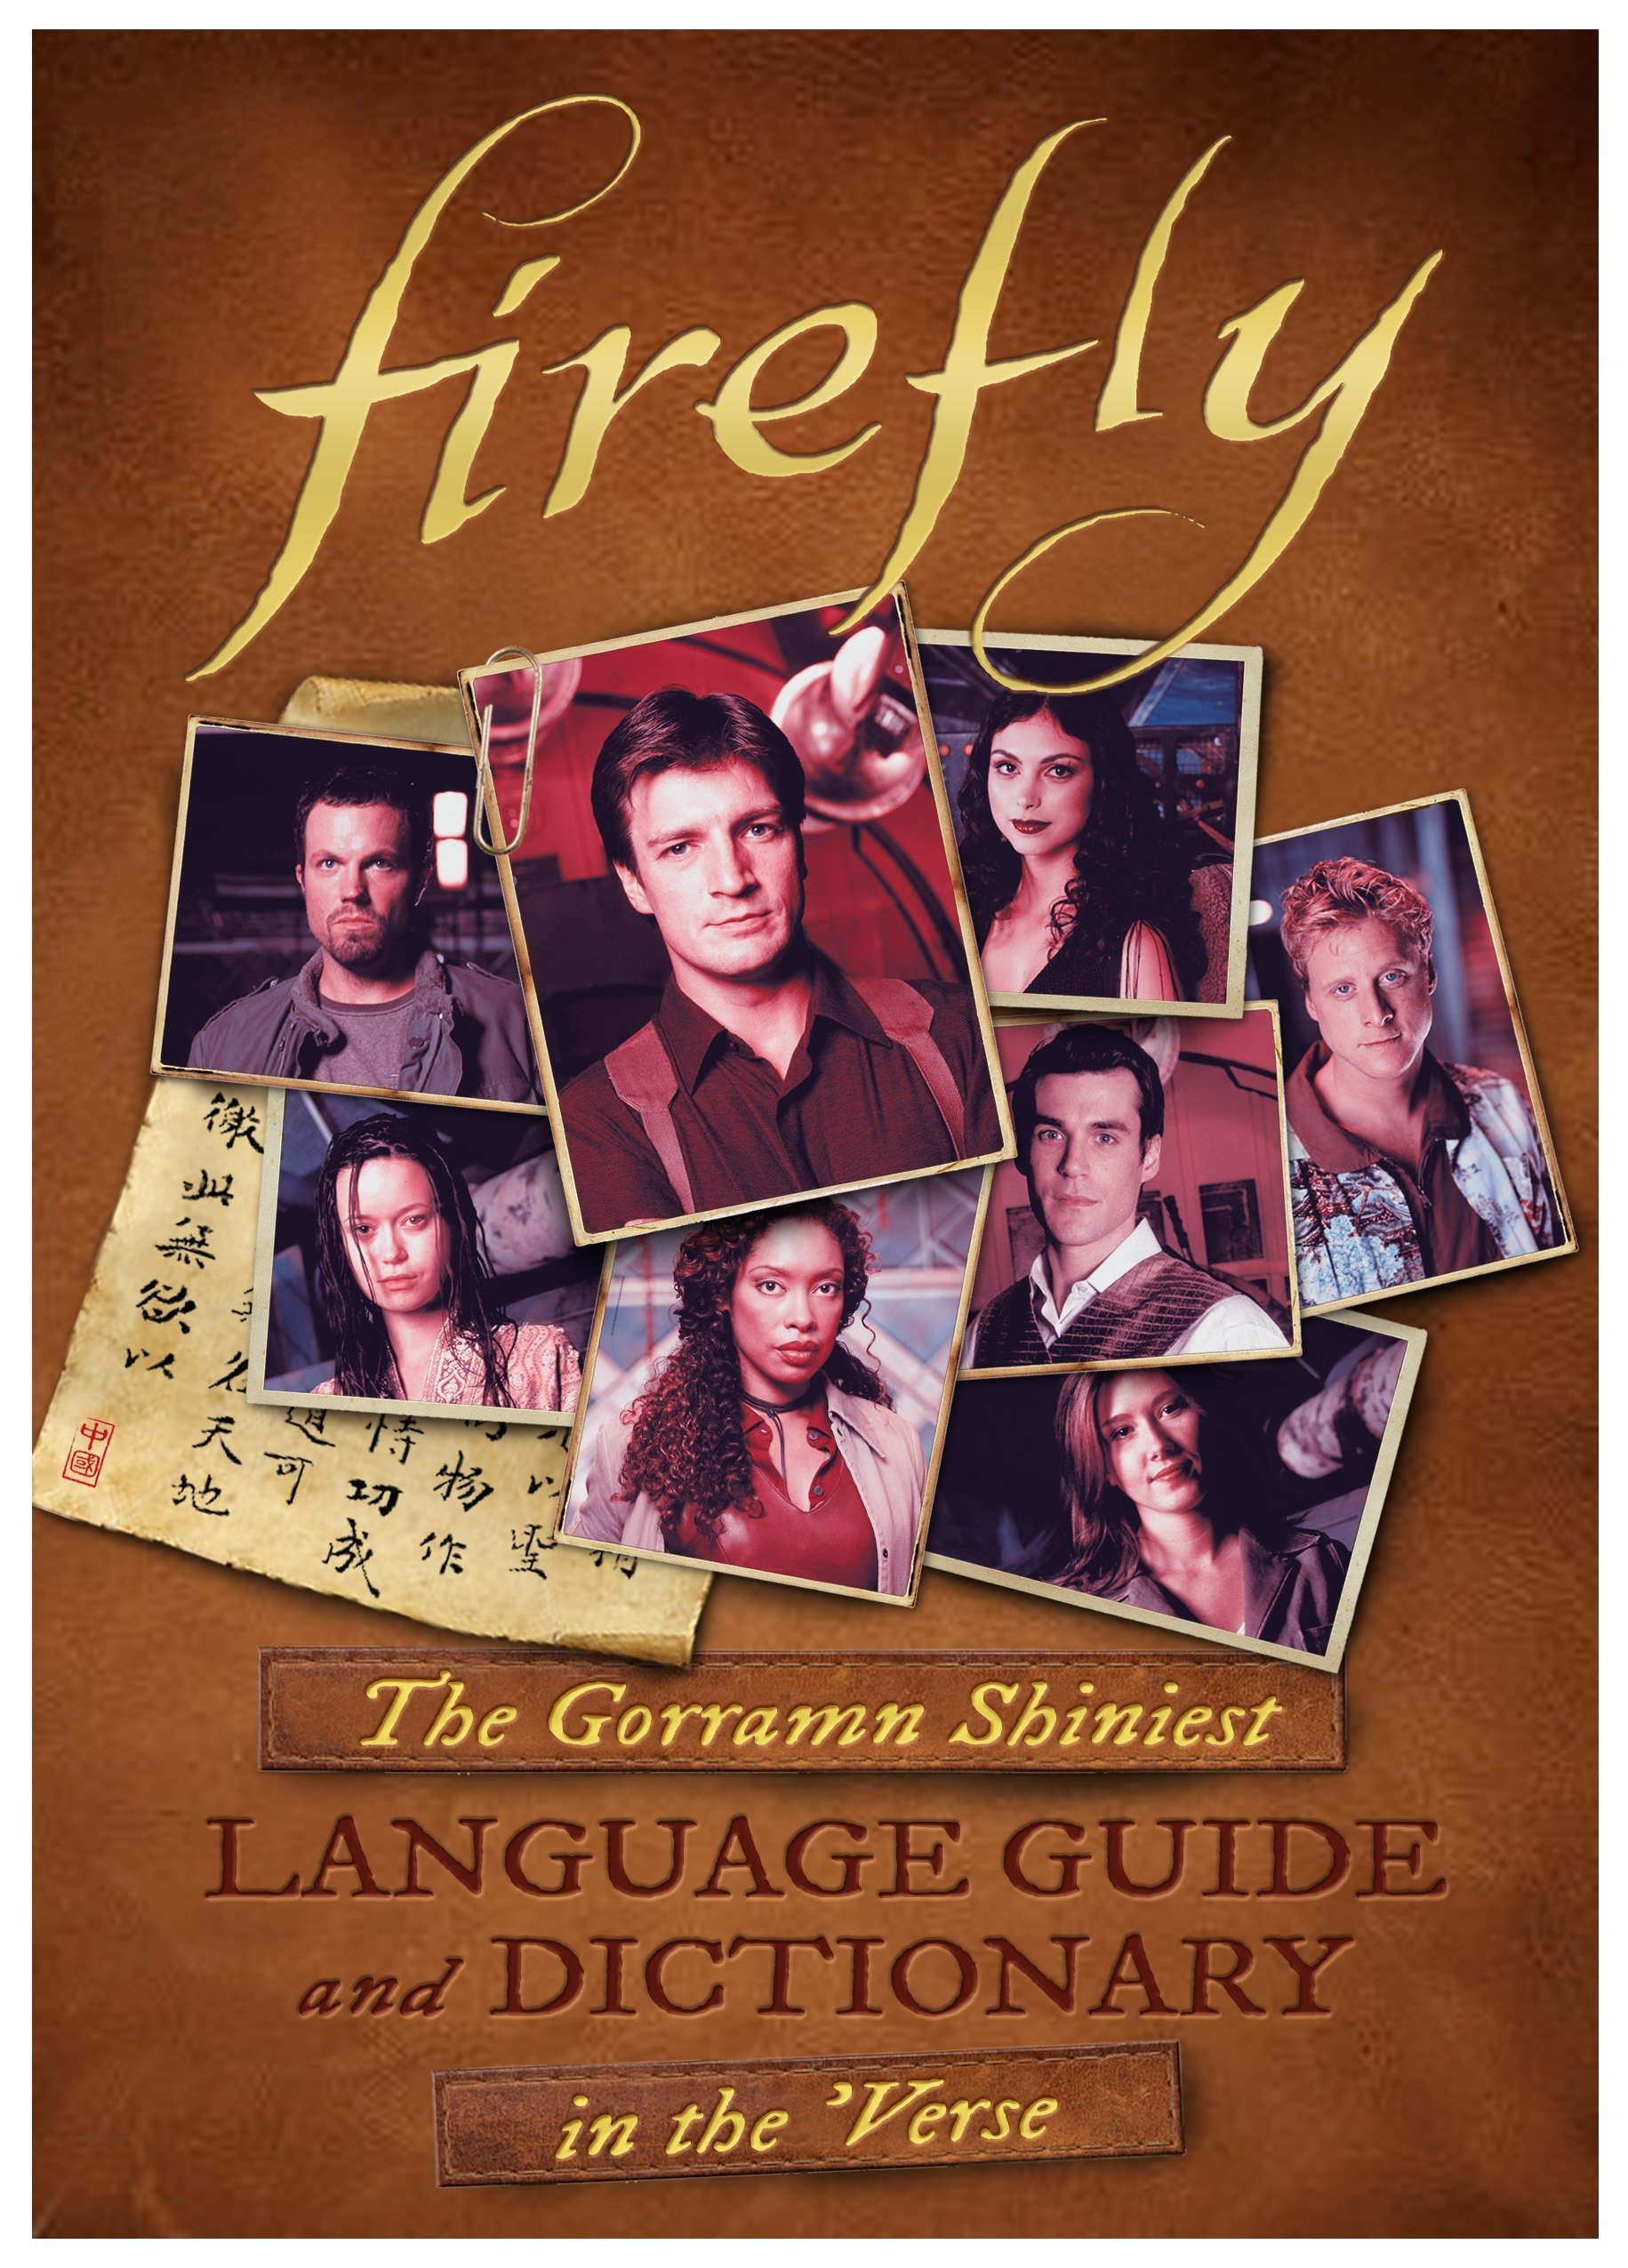 Firefly: The Gorramn Shiniest Language Guide and Dictionary in the 'Verse by Titan Books UK